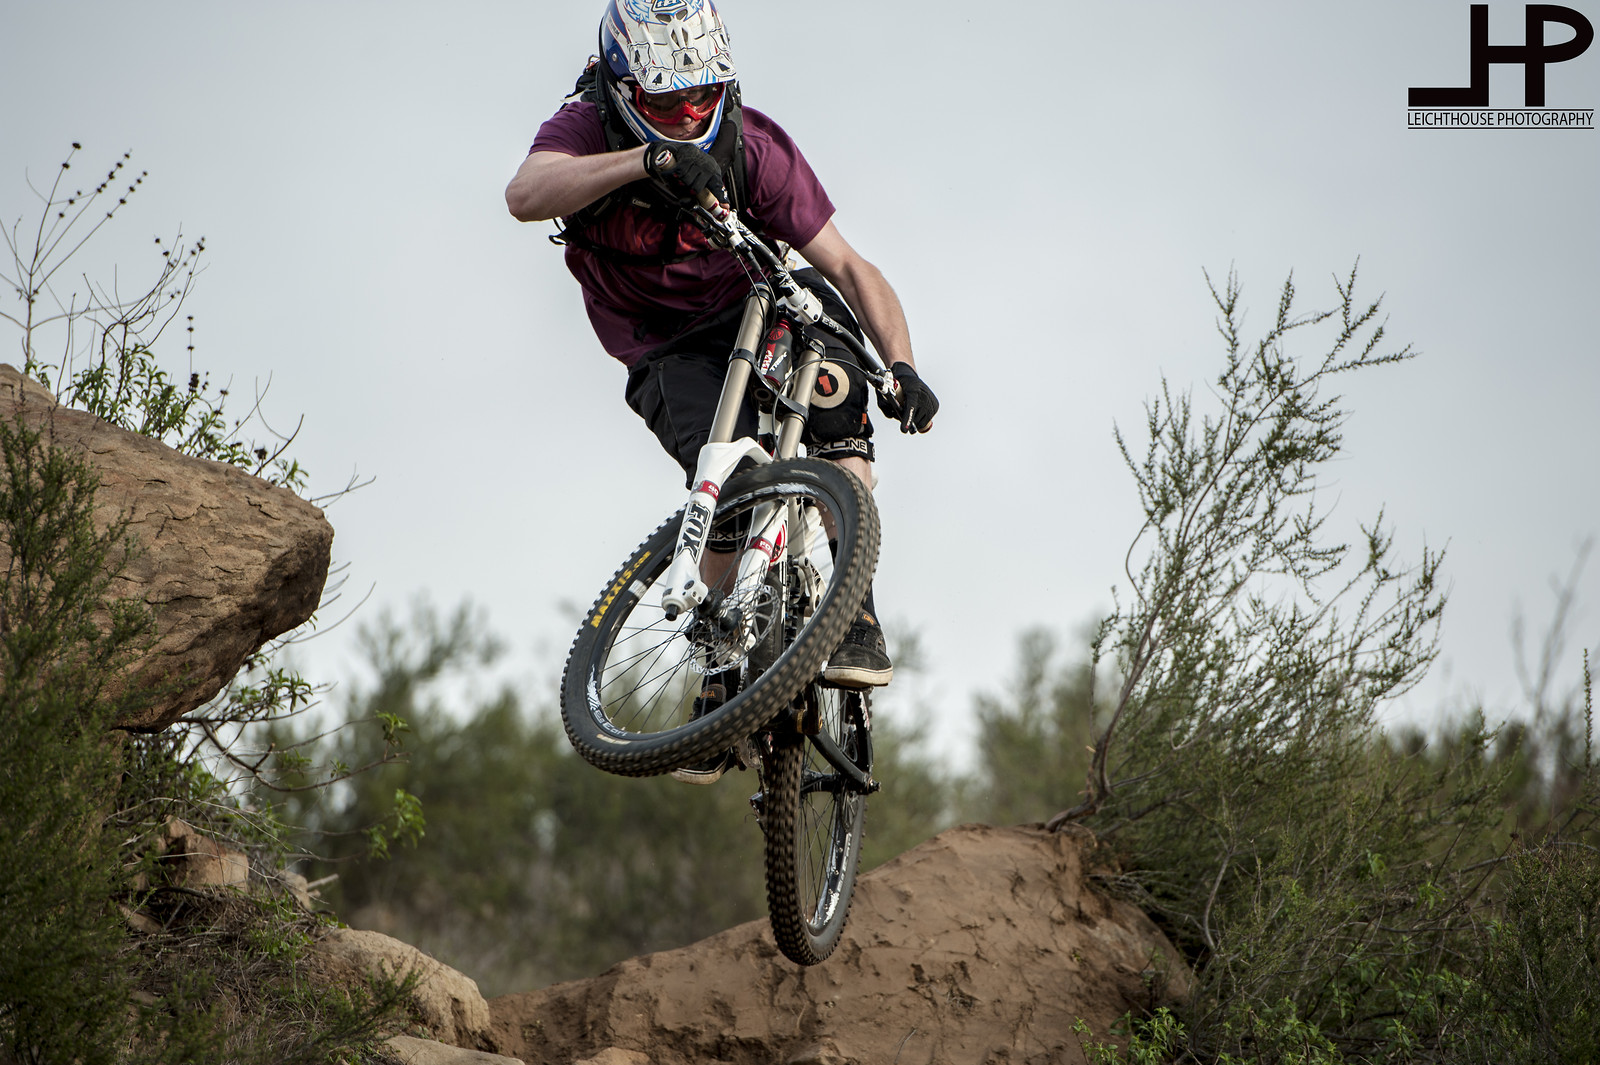 curtis slaying - LeichtHouse photography - Mountain Biking Pictures - Vital MTB